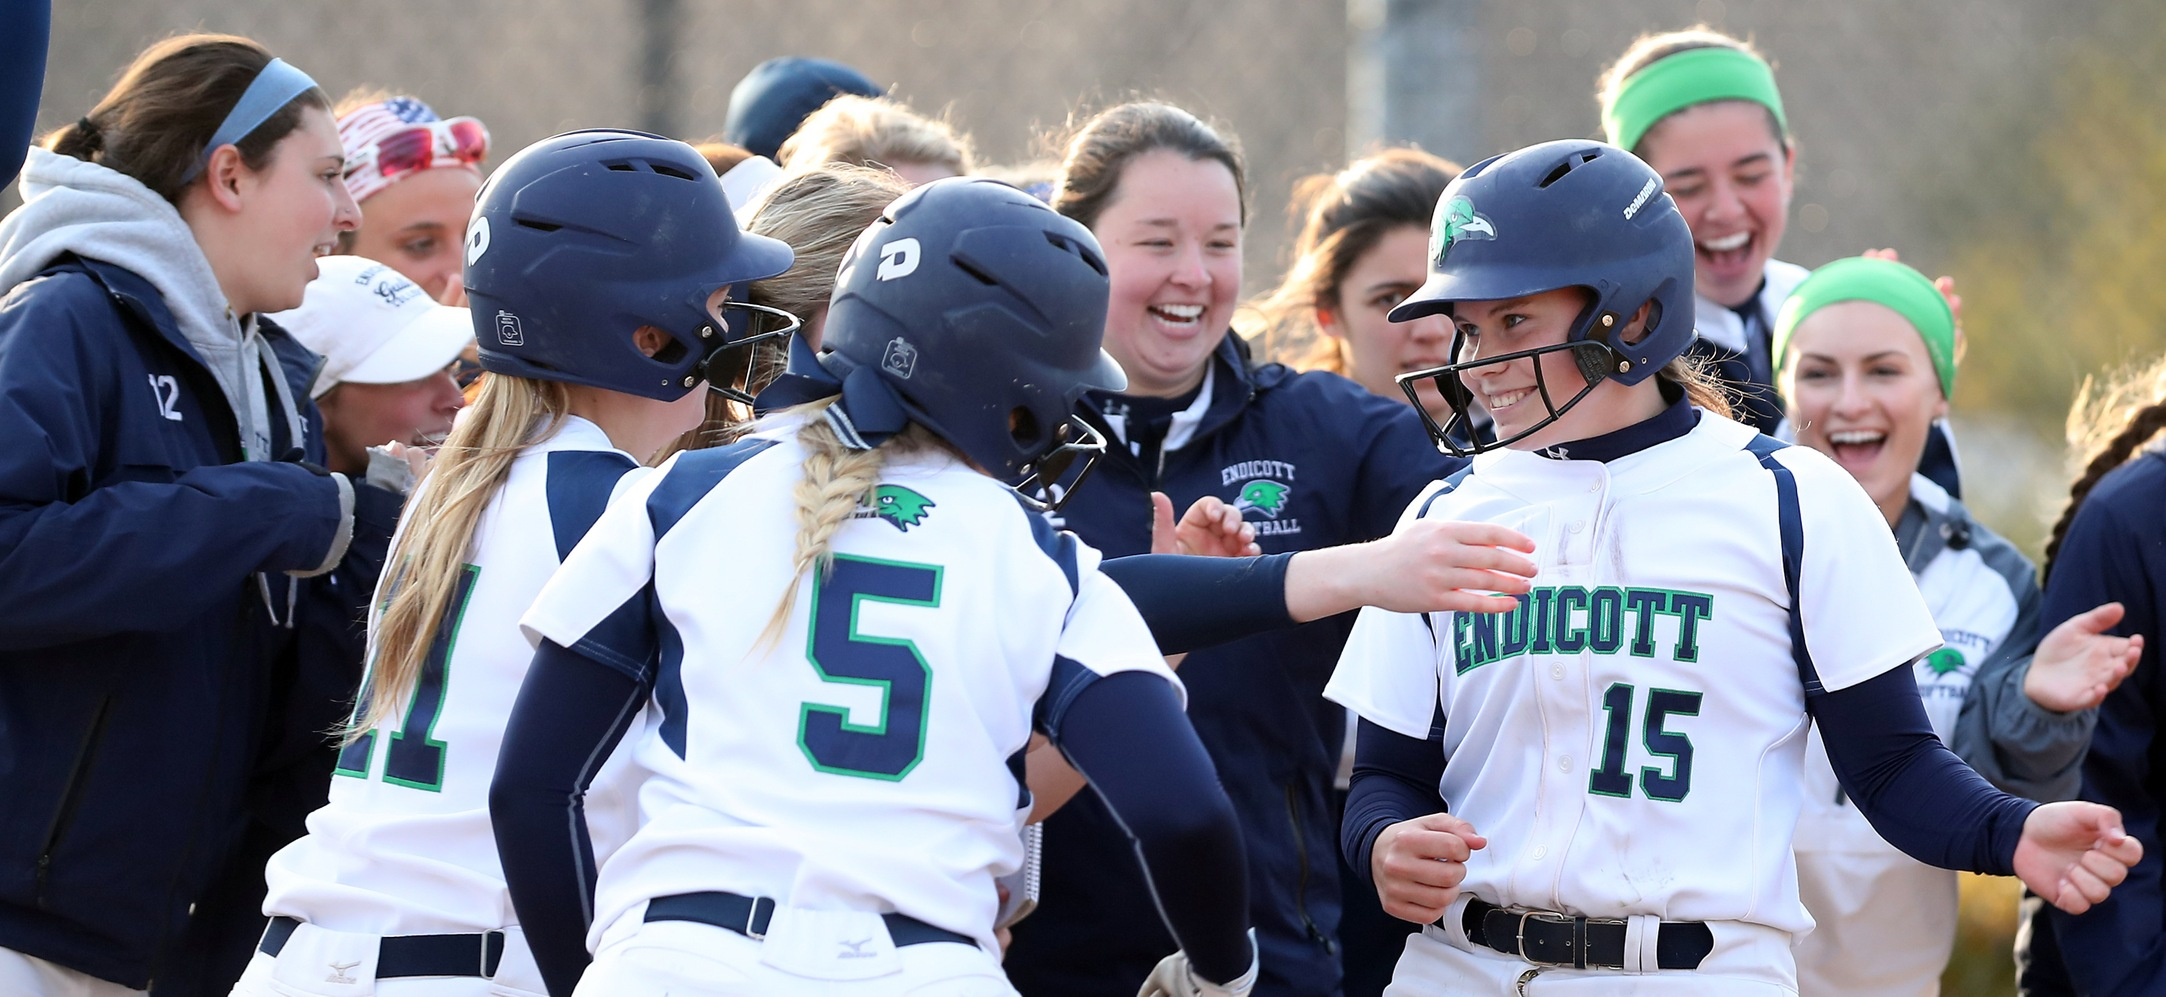 Members of the Endicott softball team celebrate a run.